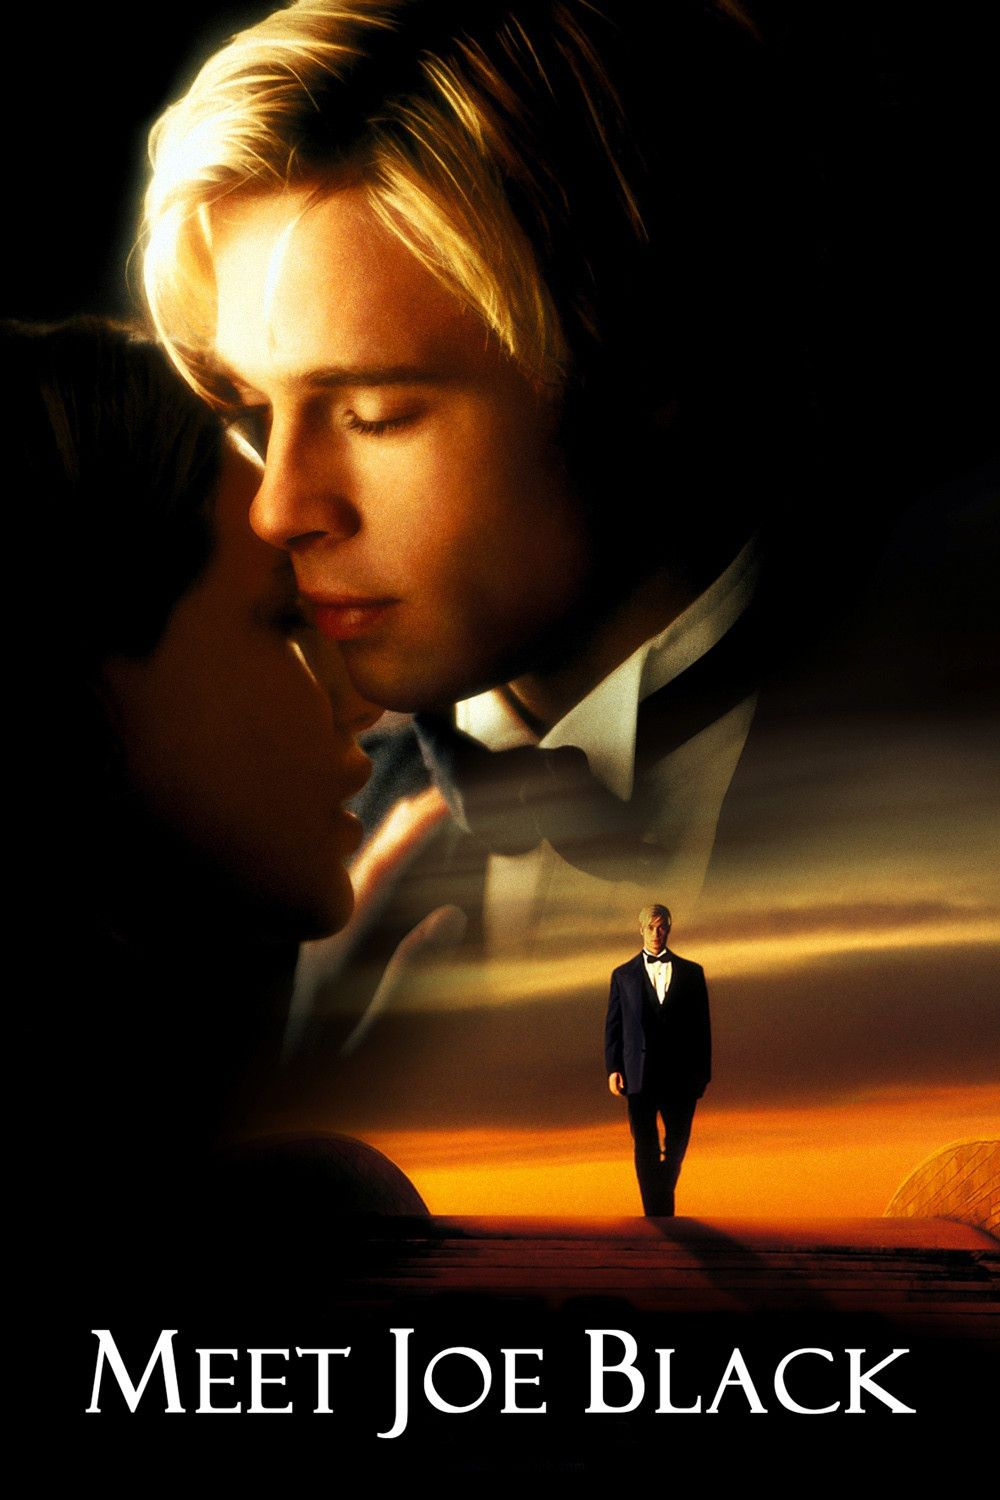 Rencontre avec joe black streaming megavideo